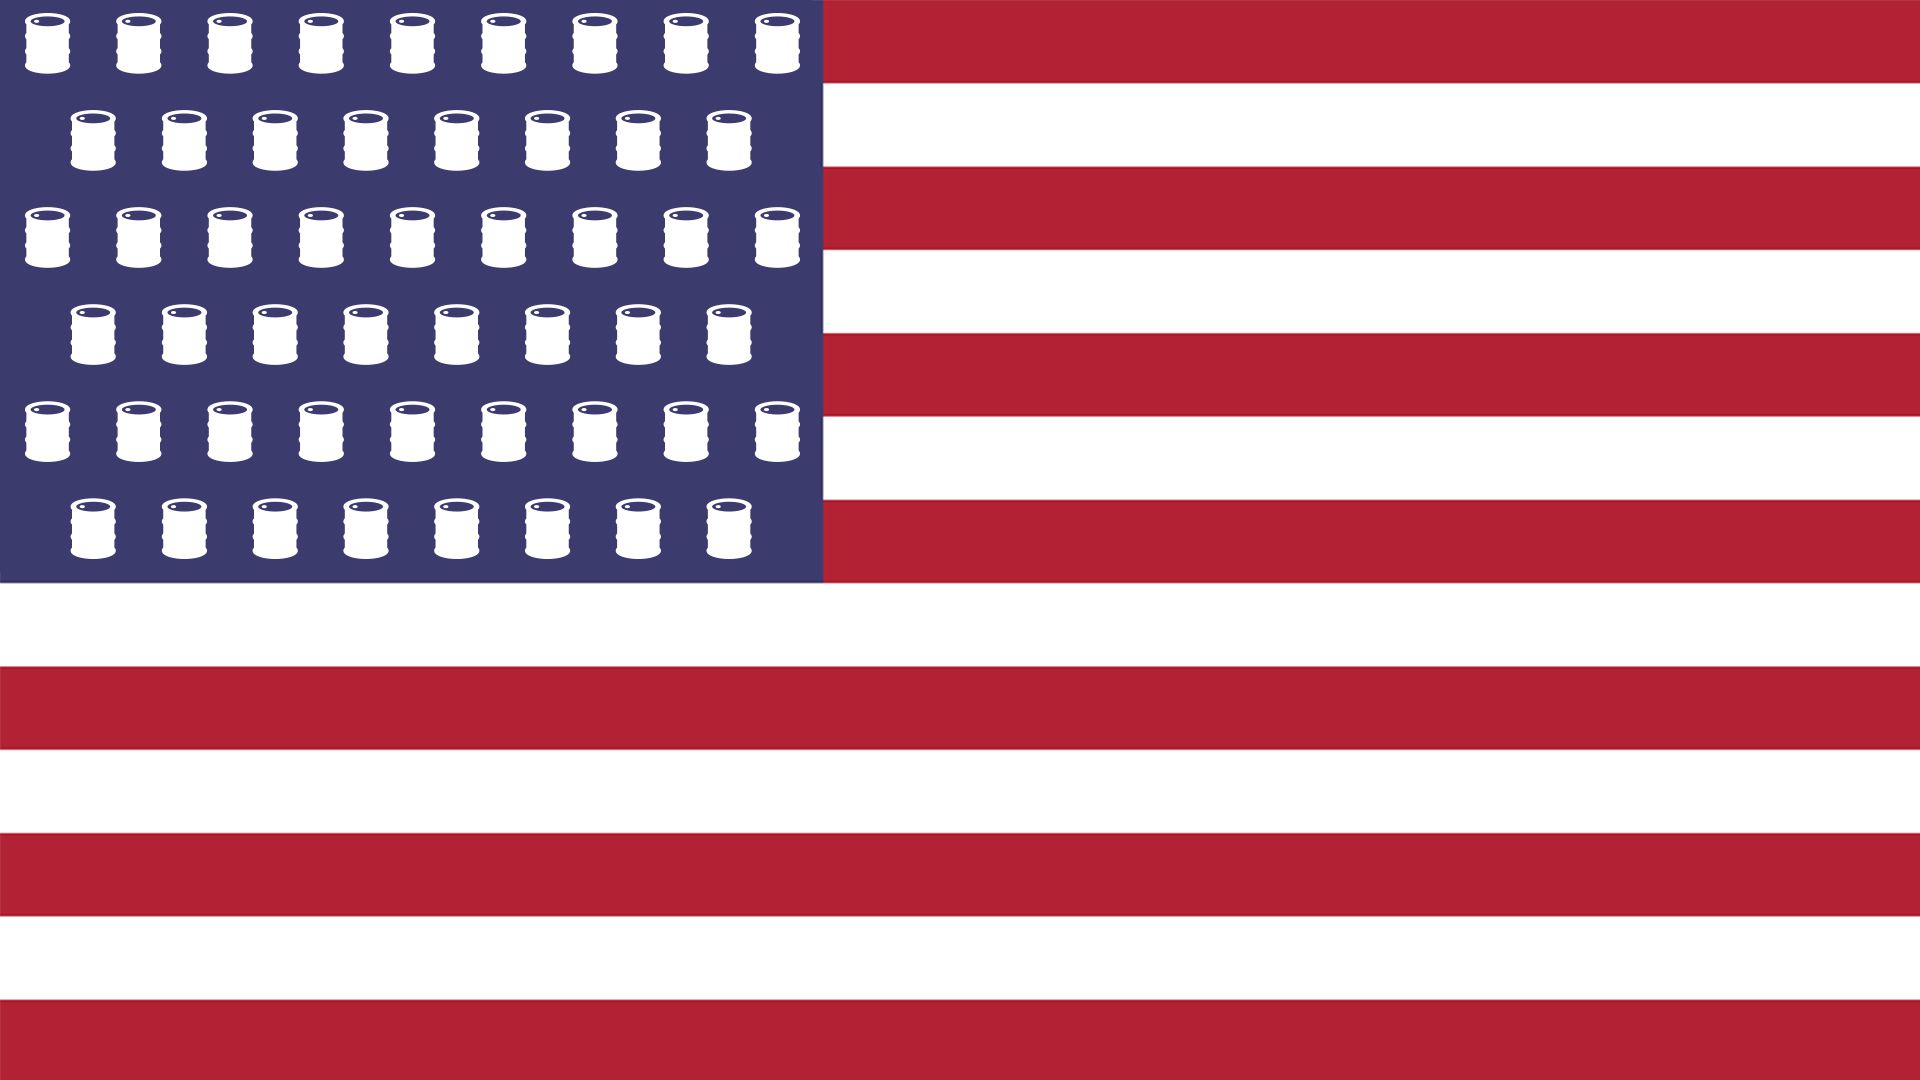 Illustration of an American flag with oil barrels instead of stars